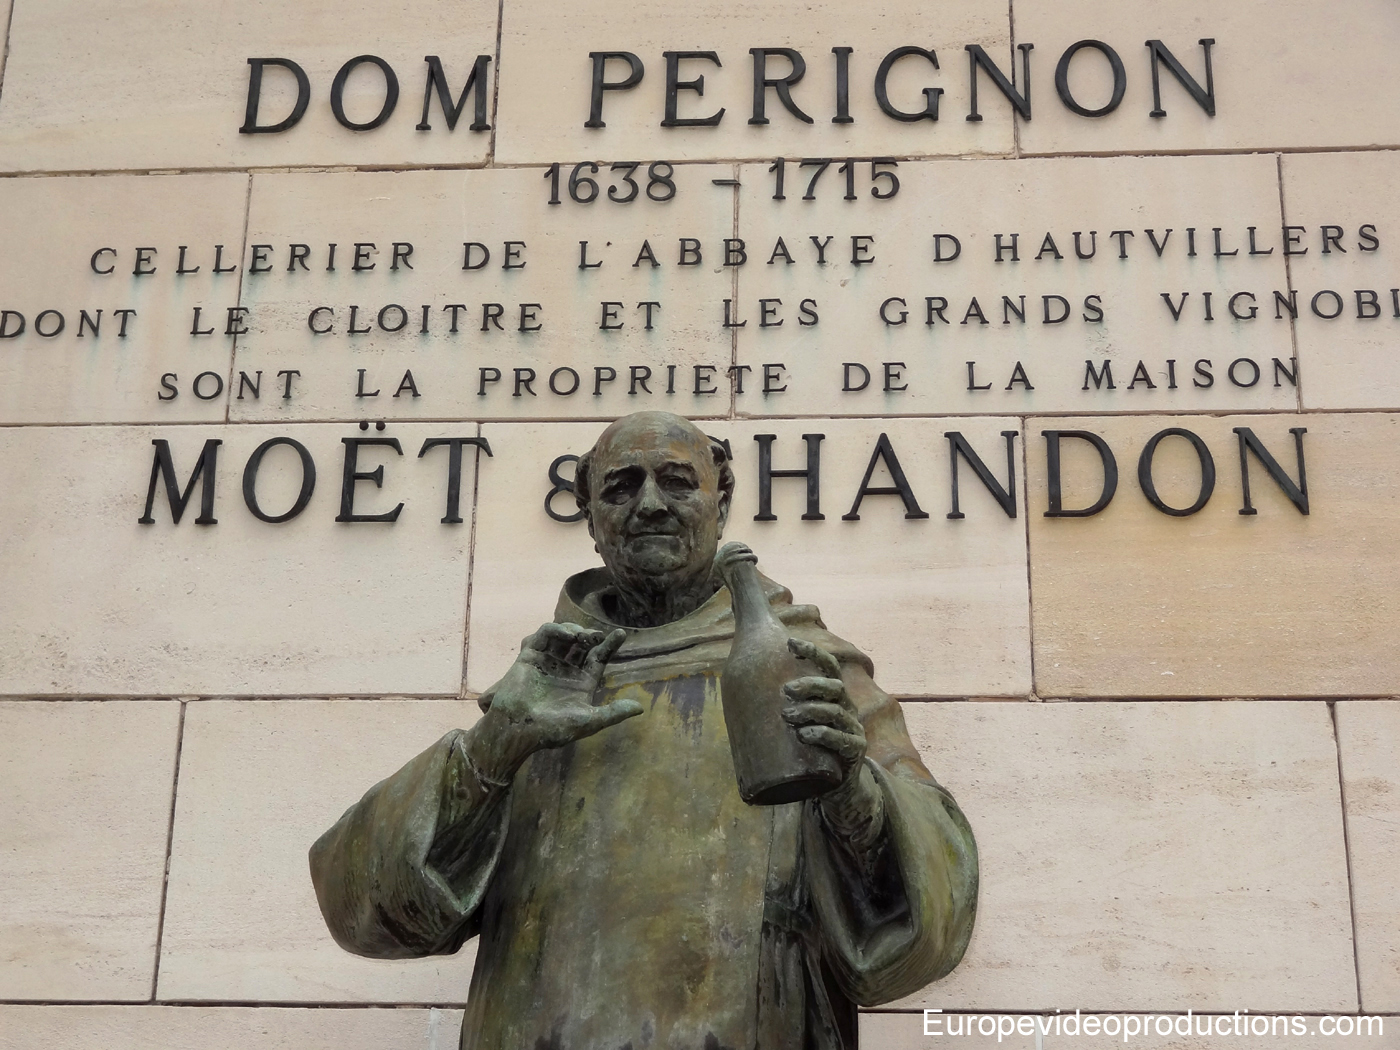 Statue of Dom Pérignon in Epernay, in Champagne region, France